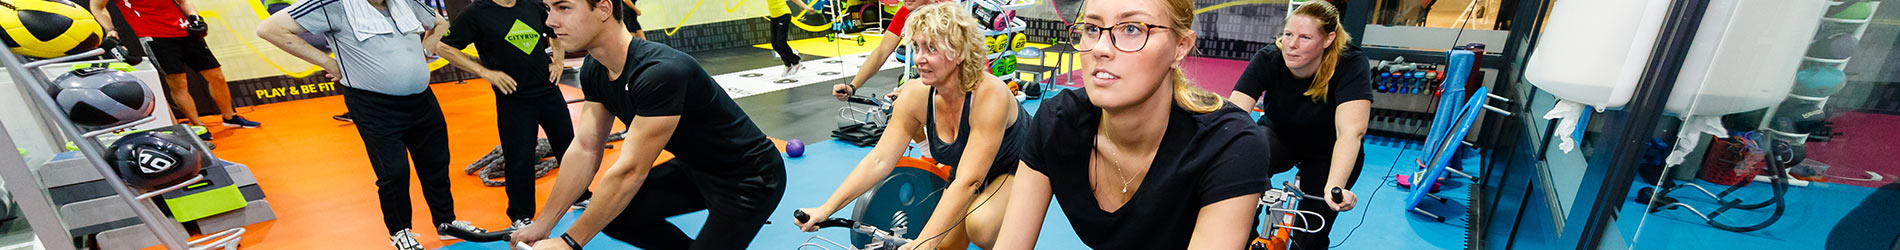 Sportschool Loosdrecht spinning